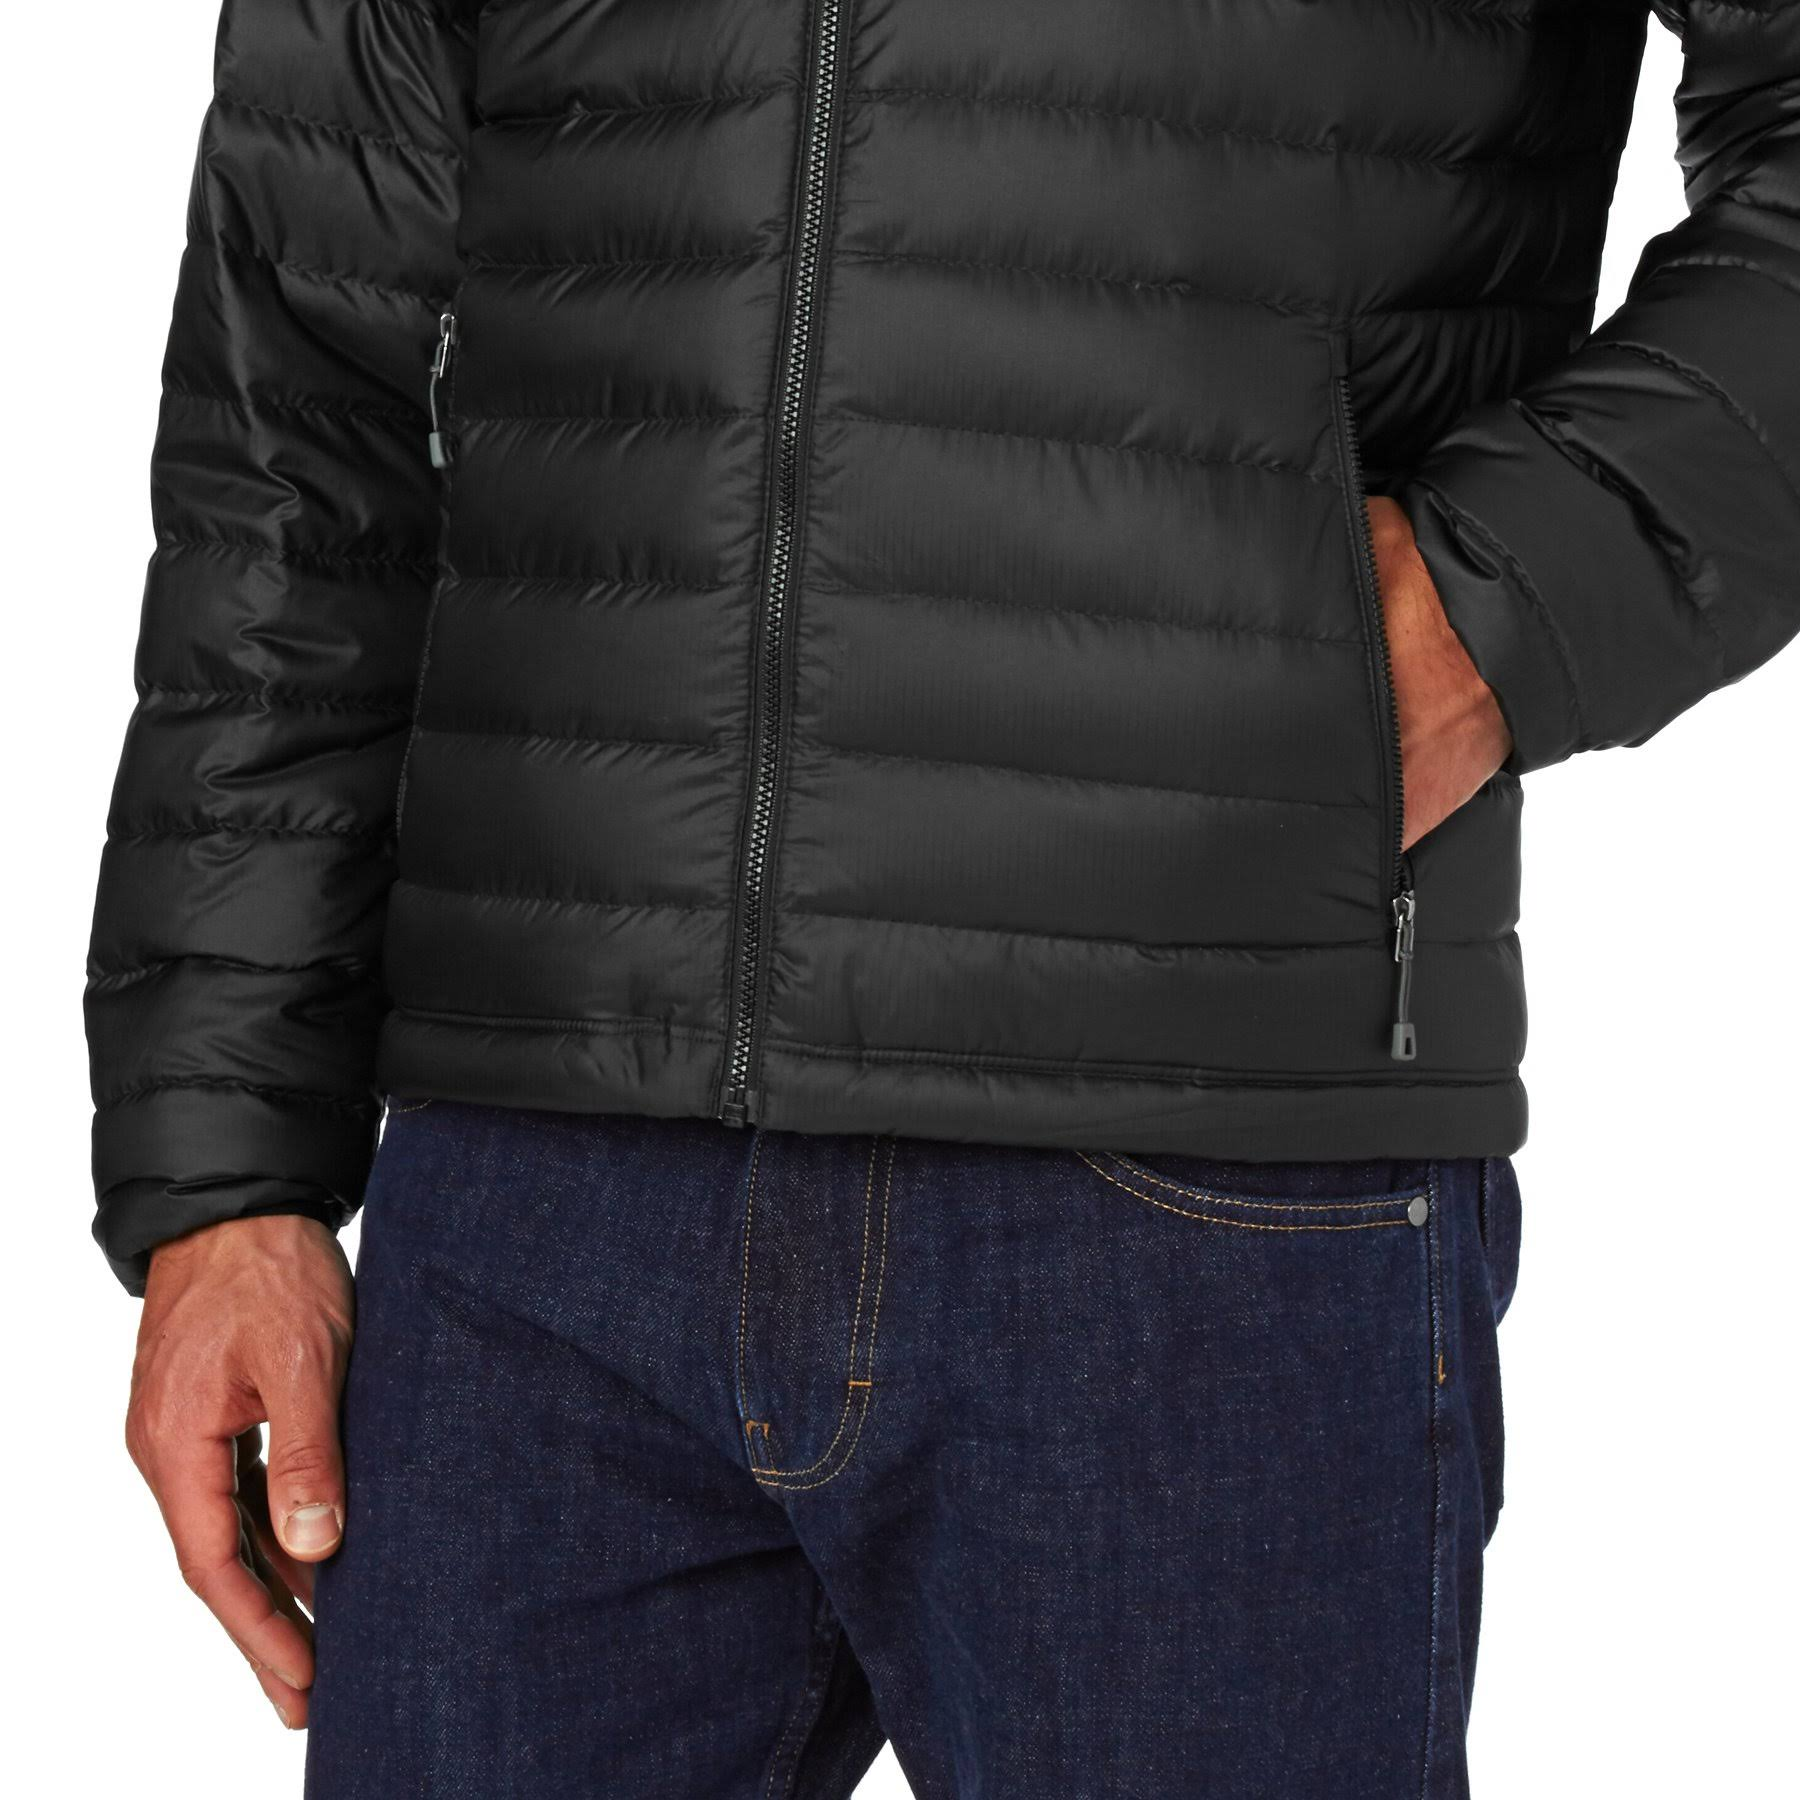 S Down Jacket Sweater Black Patagonia PUAwgznwx